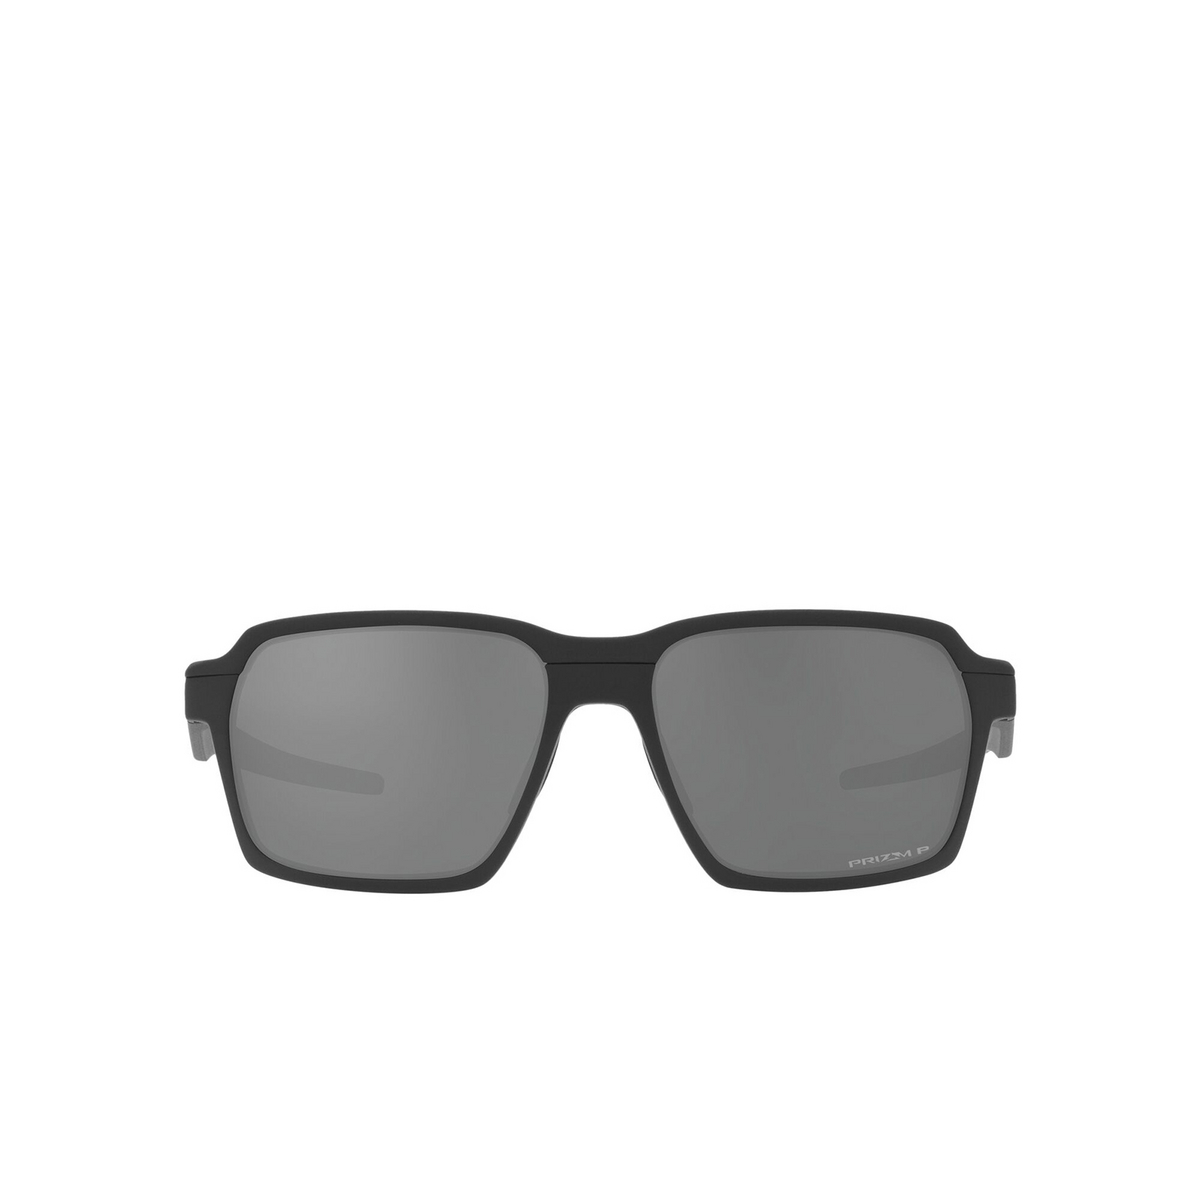 Oakley® Rectangle Sunglasses: Parlay OO4143 color Matte Black 414304 - front view.